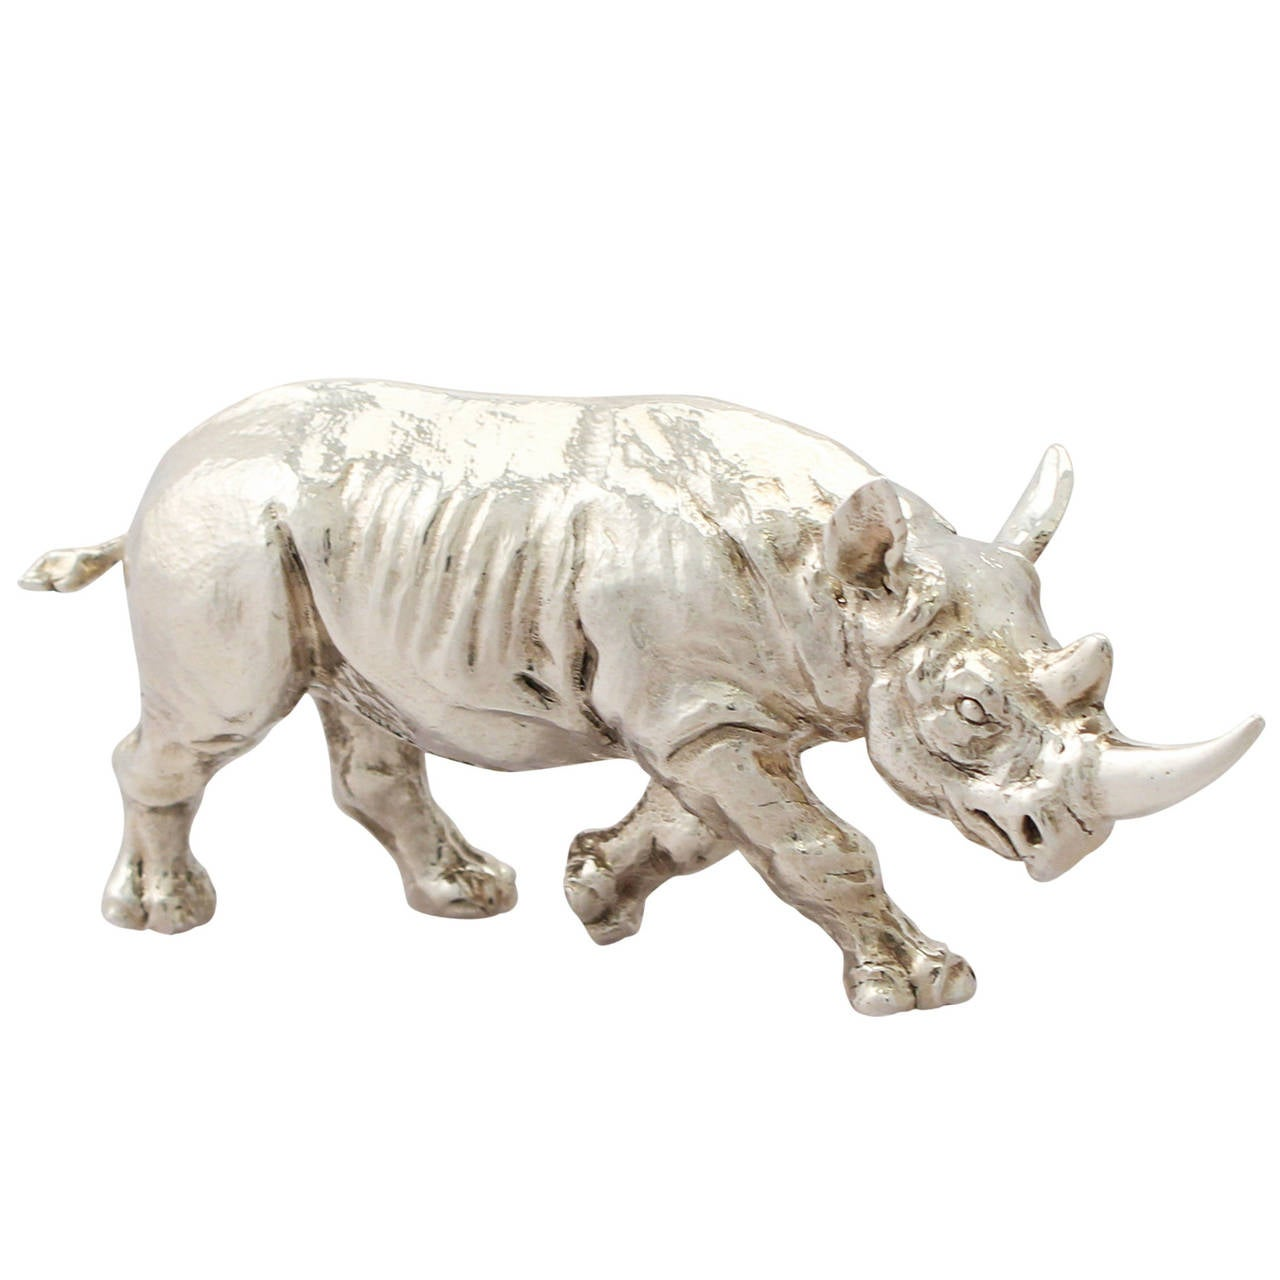 Sterling Silver Model of a Rhinoceros, Contemporary 2011